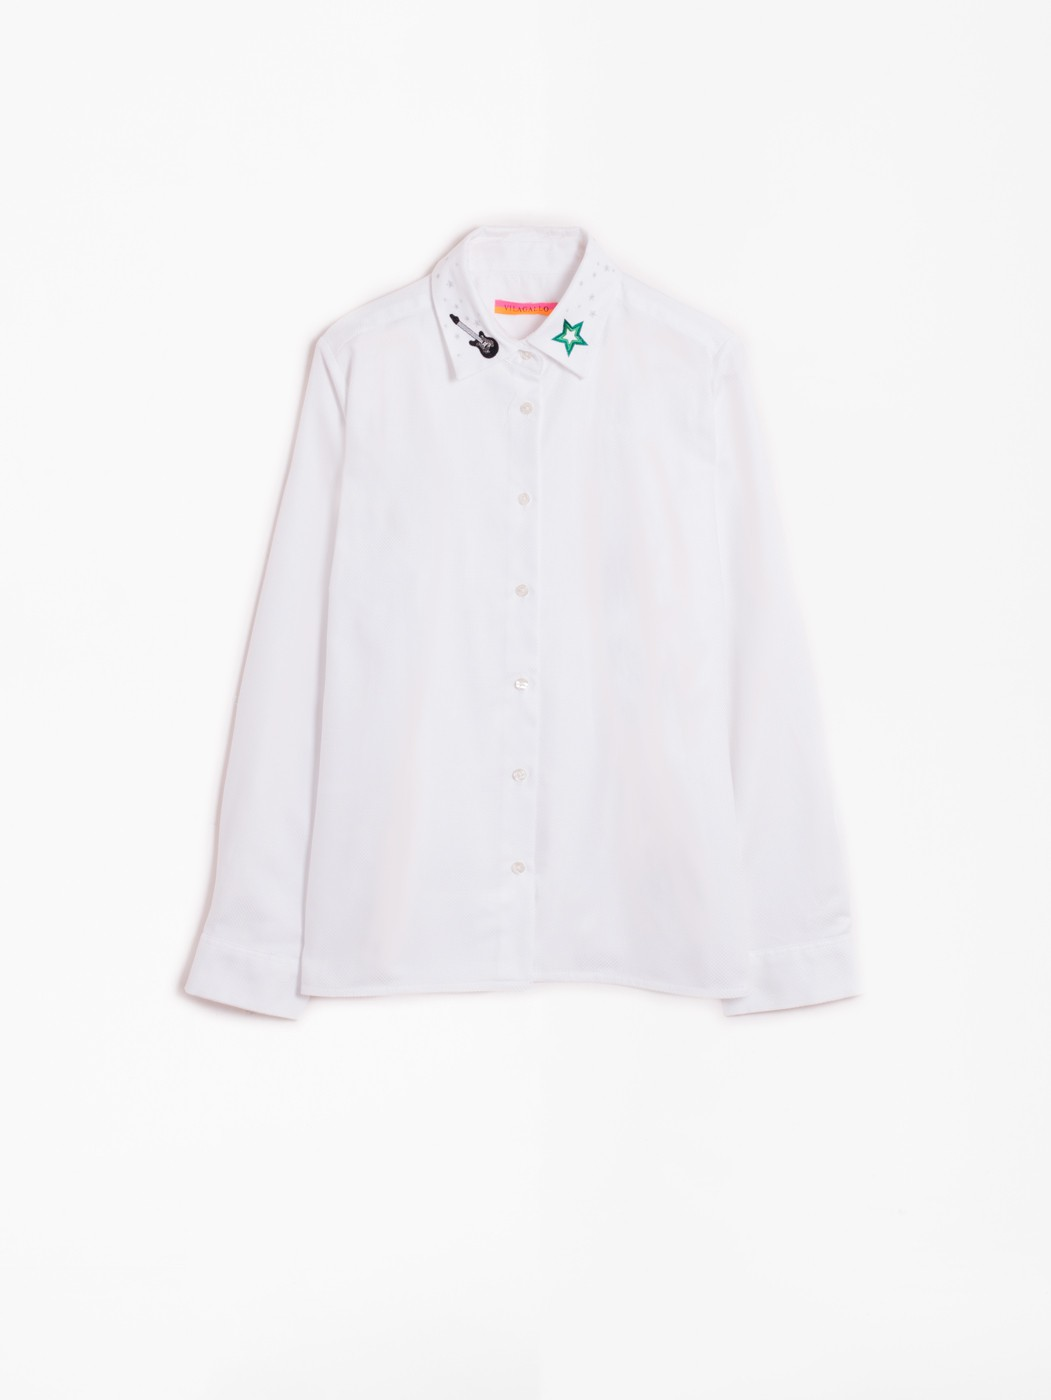 ISABELLA EMBROIDERY SHIRT PANAMA WHITE